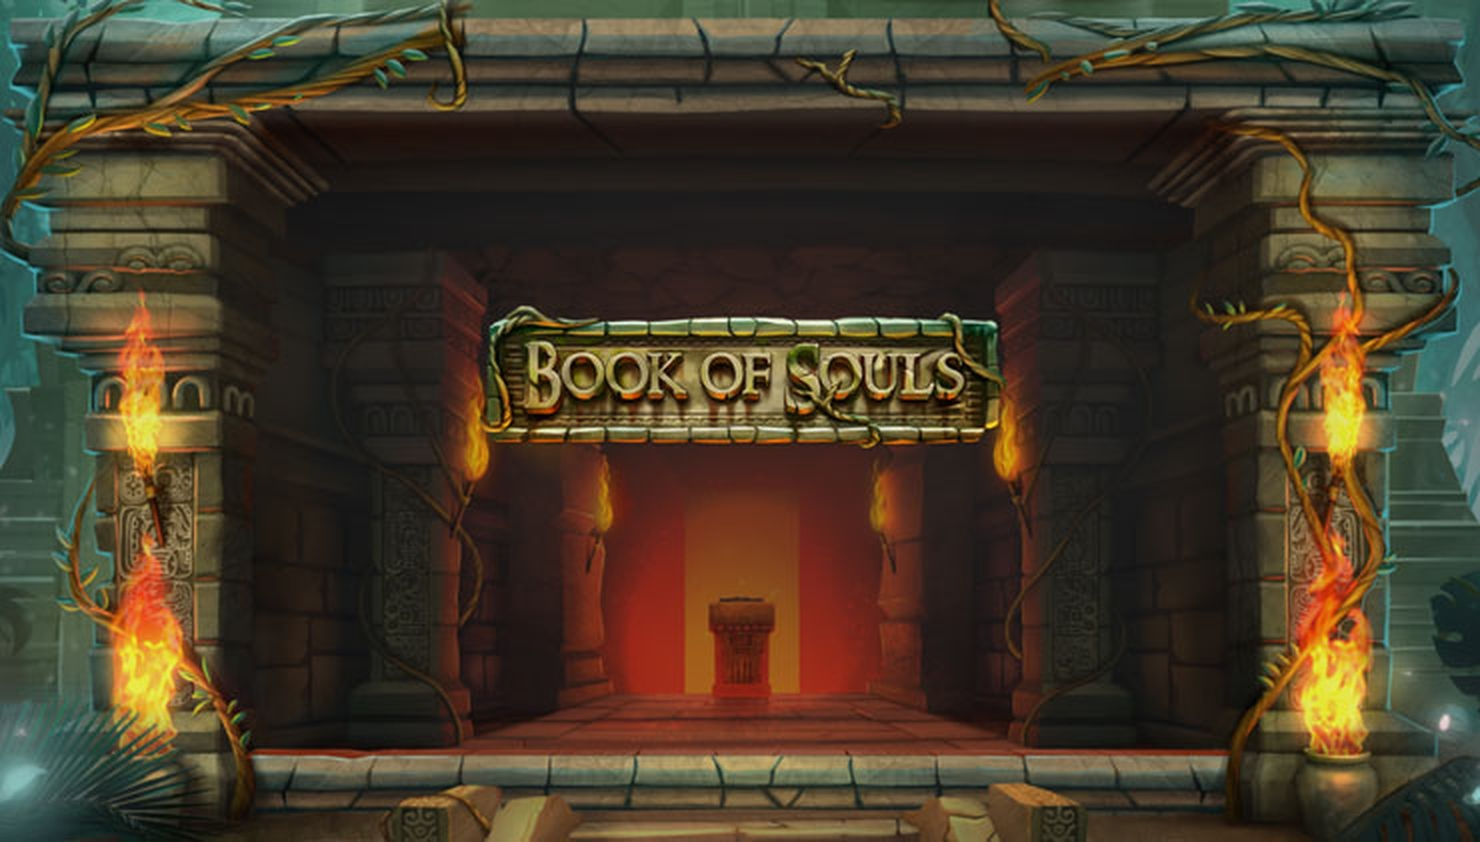 The Book of Souls (Spearhead Studios) Online Slot Demo Game by Spearhead Studios